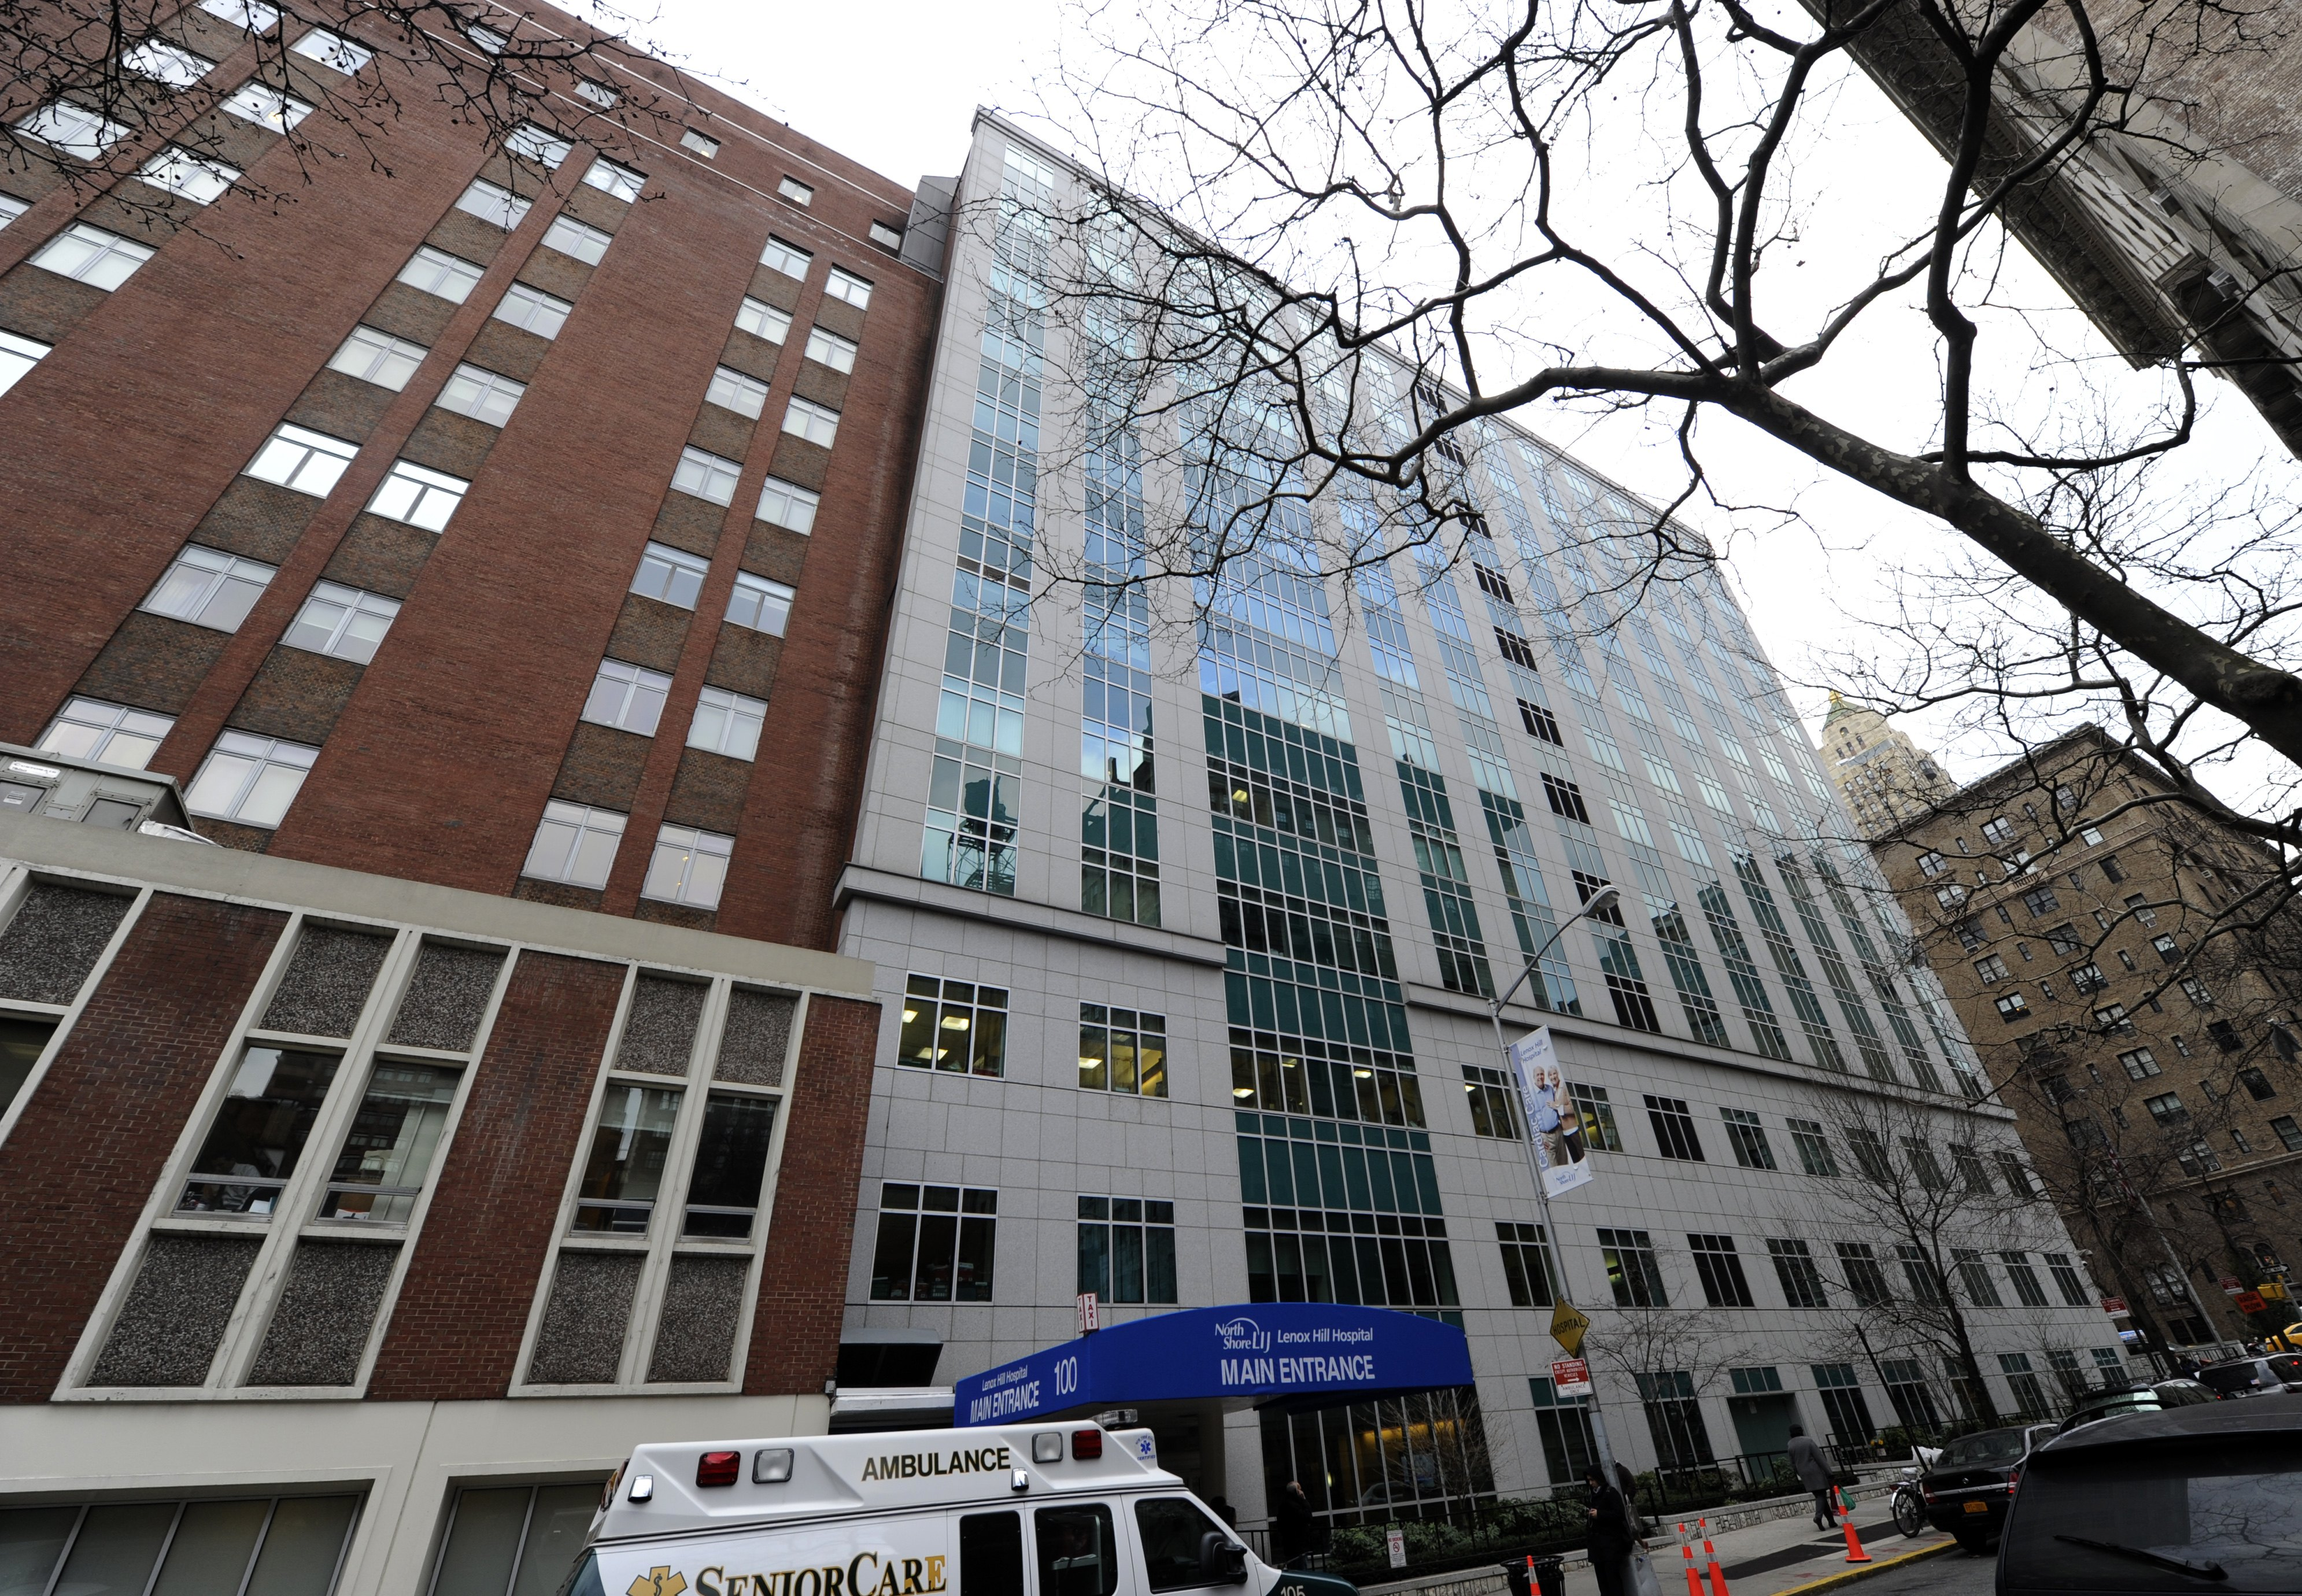 A view of a grey and brick hospital building on an Upper East Side block with a white and gold ambulance parked outside of an entrance with a blue awning.